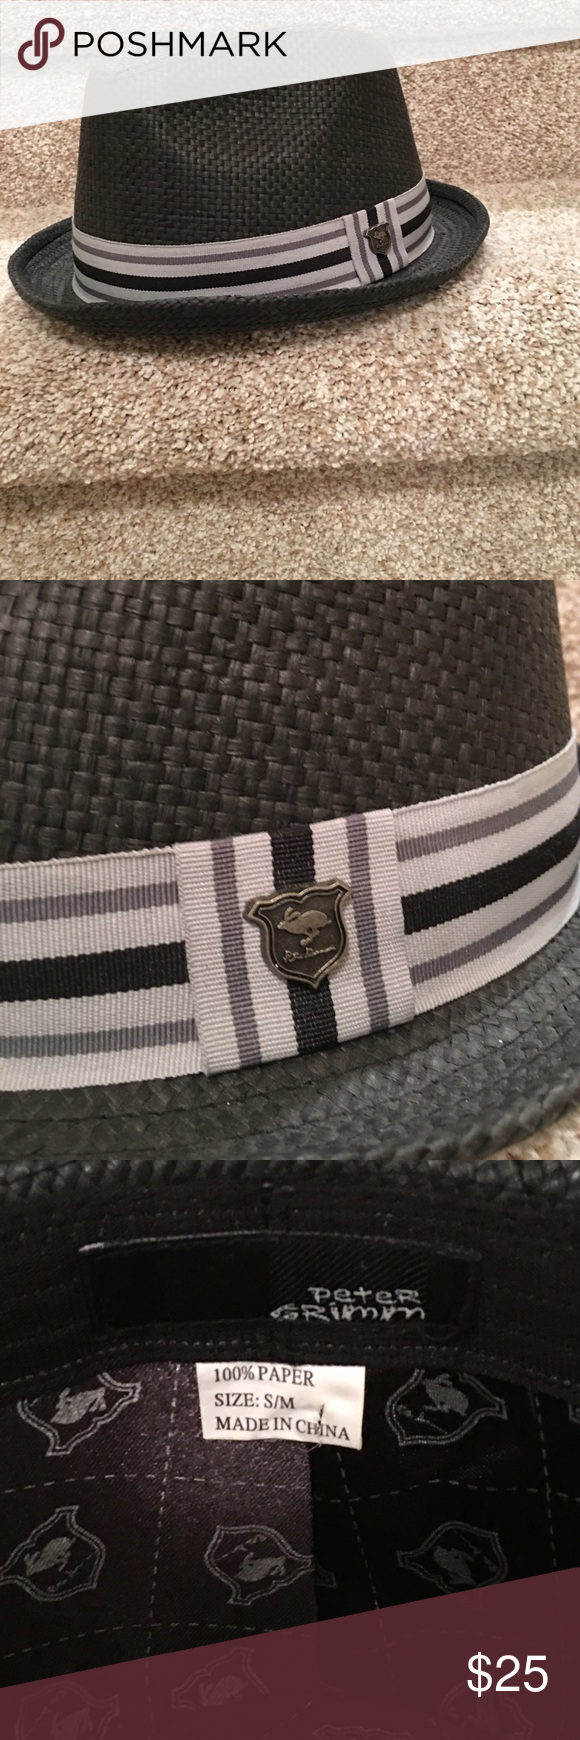 Peter Grimm fedora Clean, No sweat marks or smells. Size s/m No damage. Nice condition peter grimm Accessories Hats